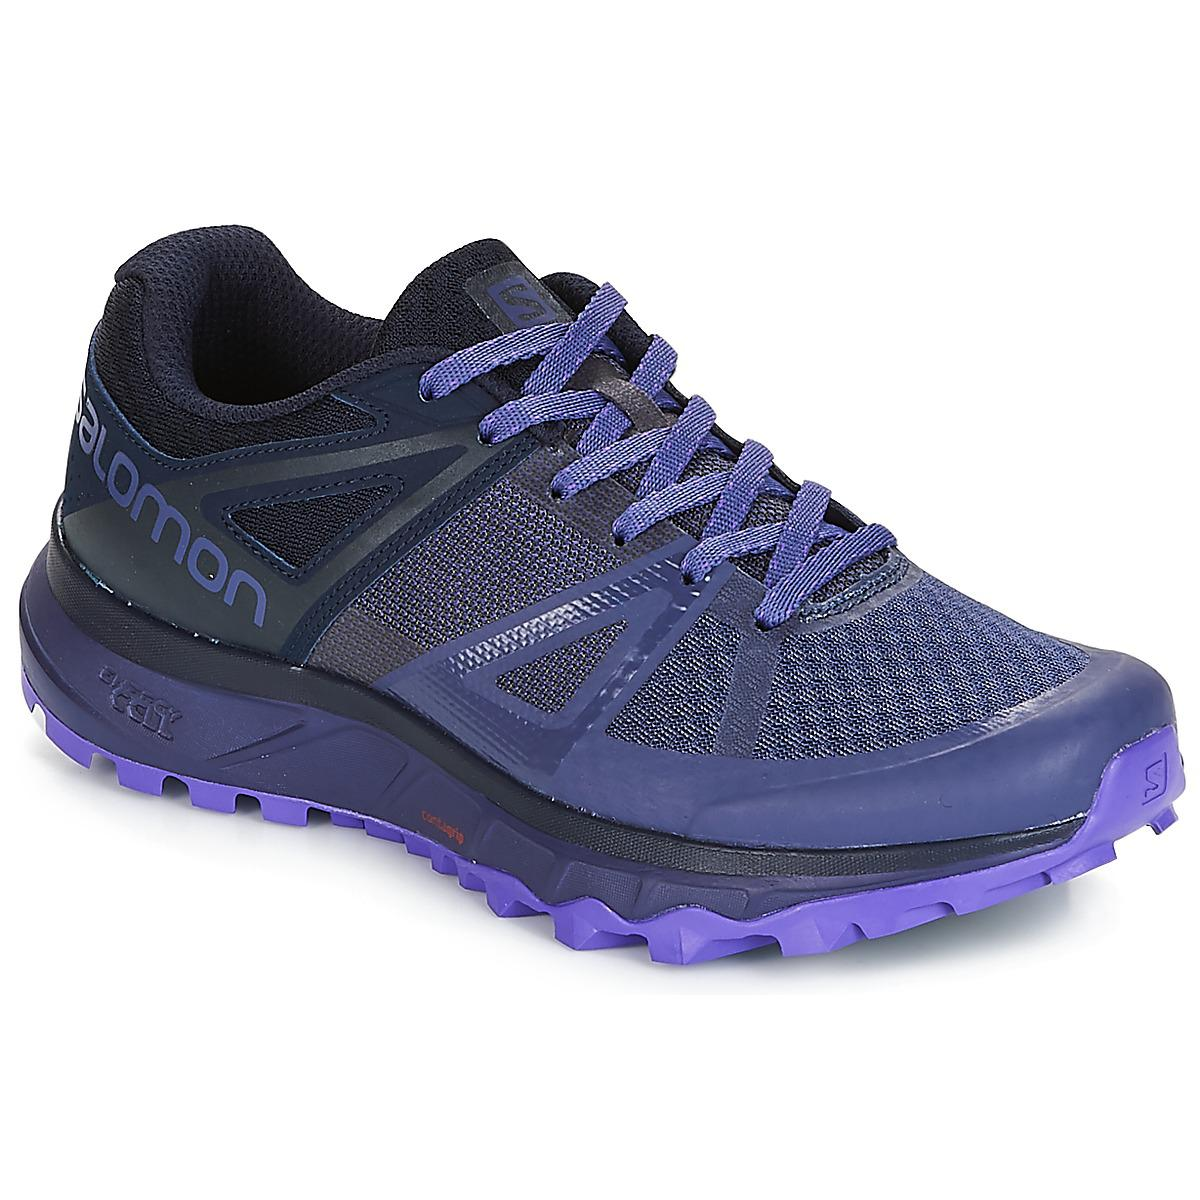 a0a09fa7862d Yves Salomon Trailster W Women s Running Trainers In Purple in ...